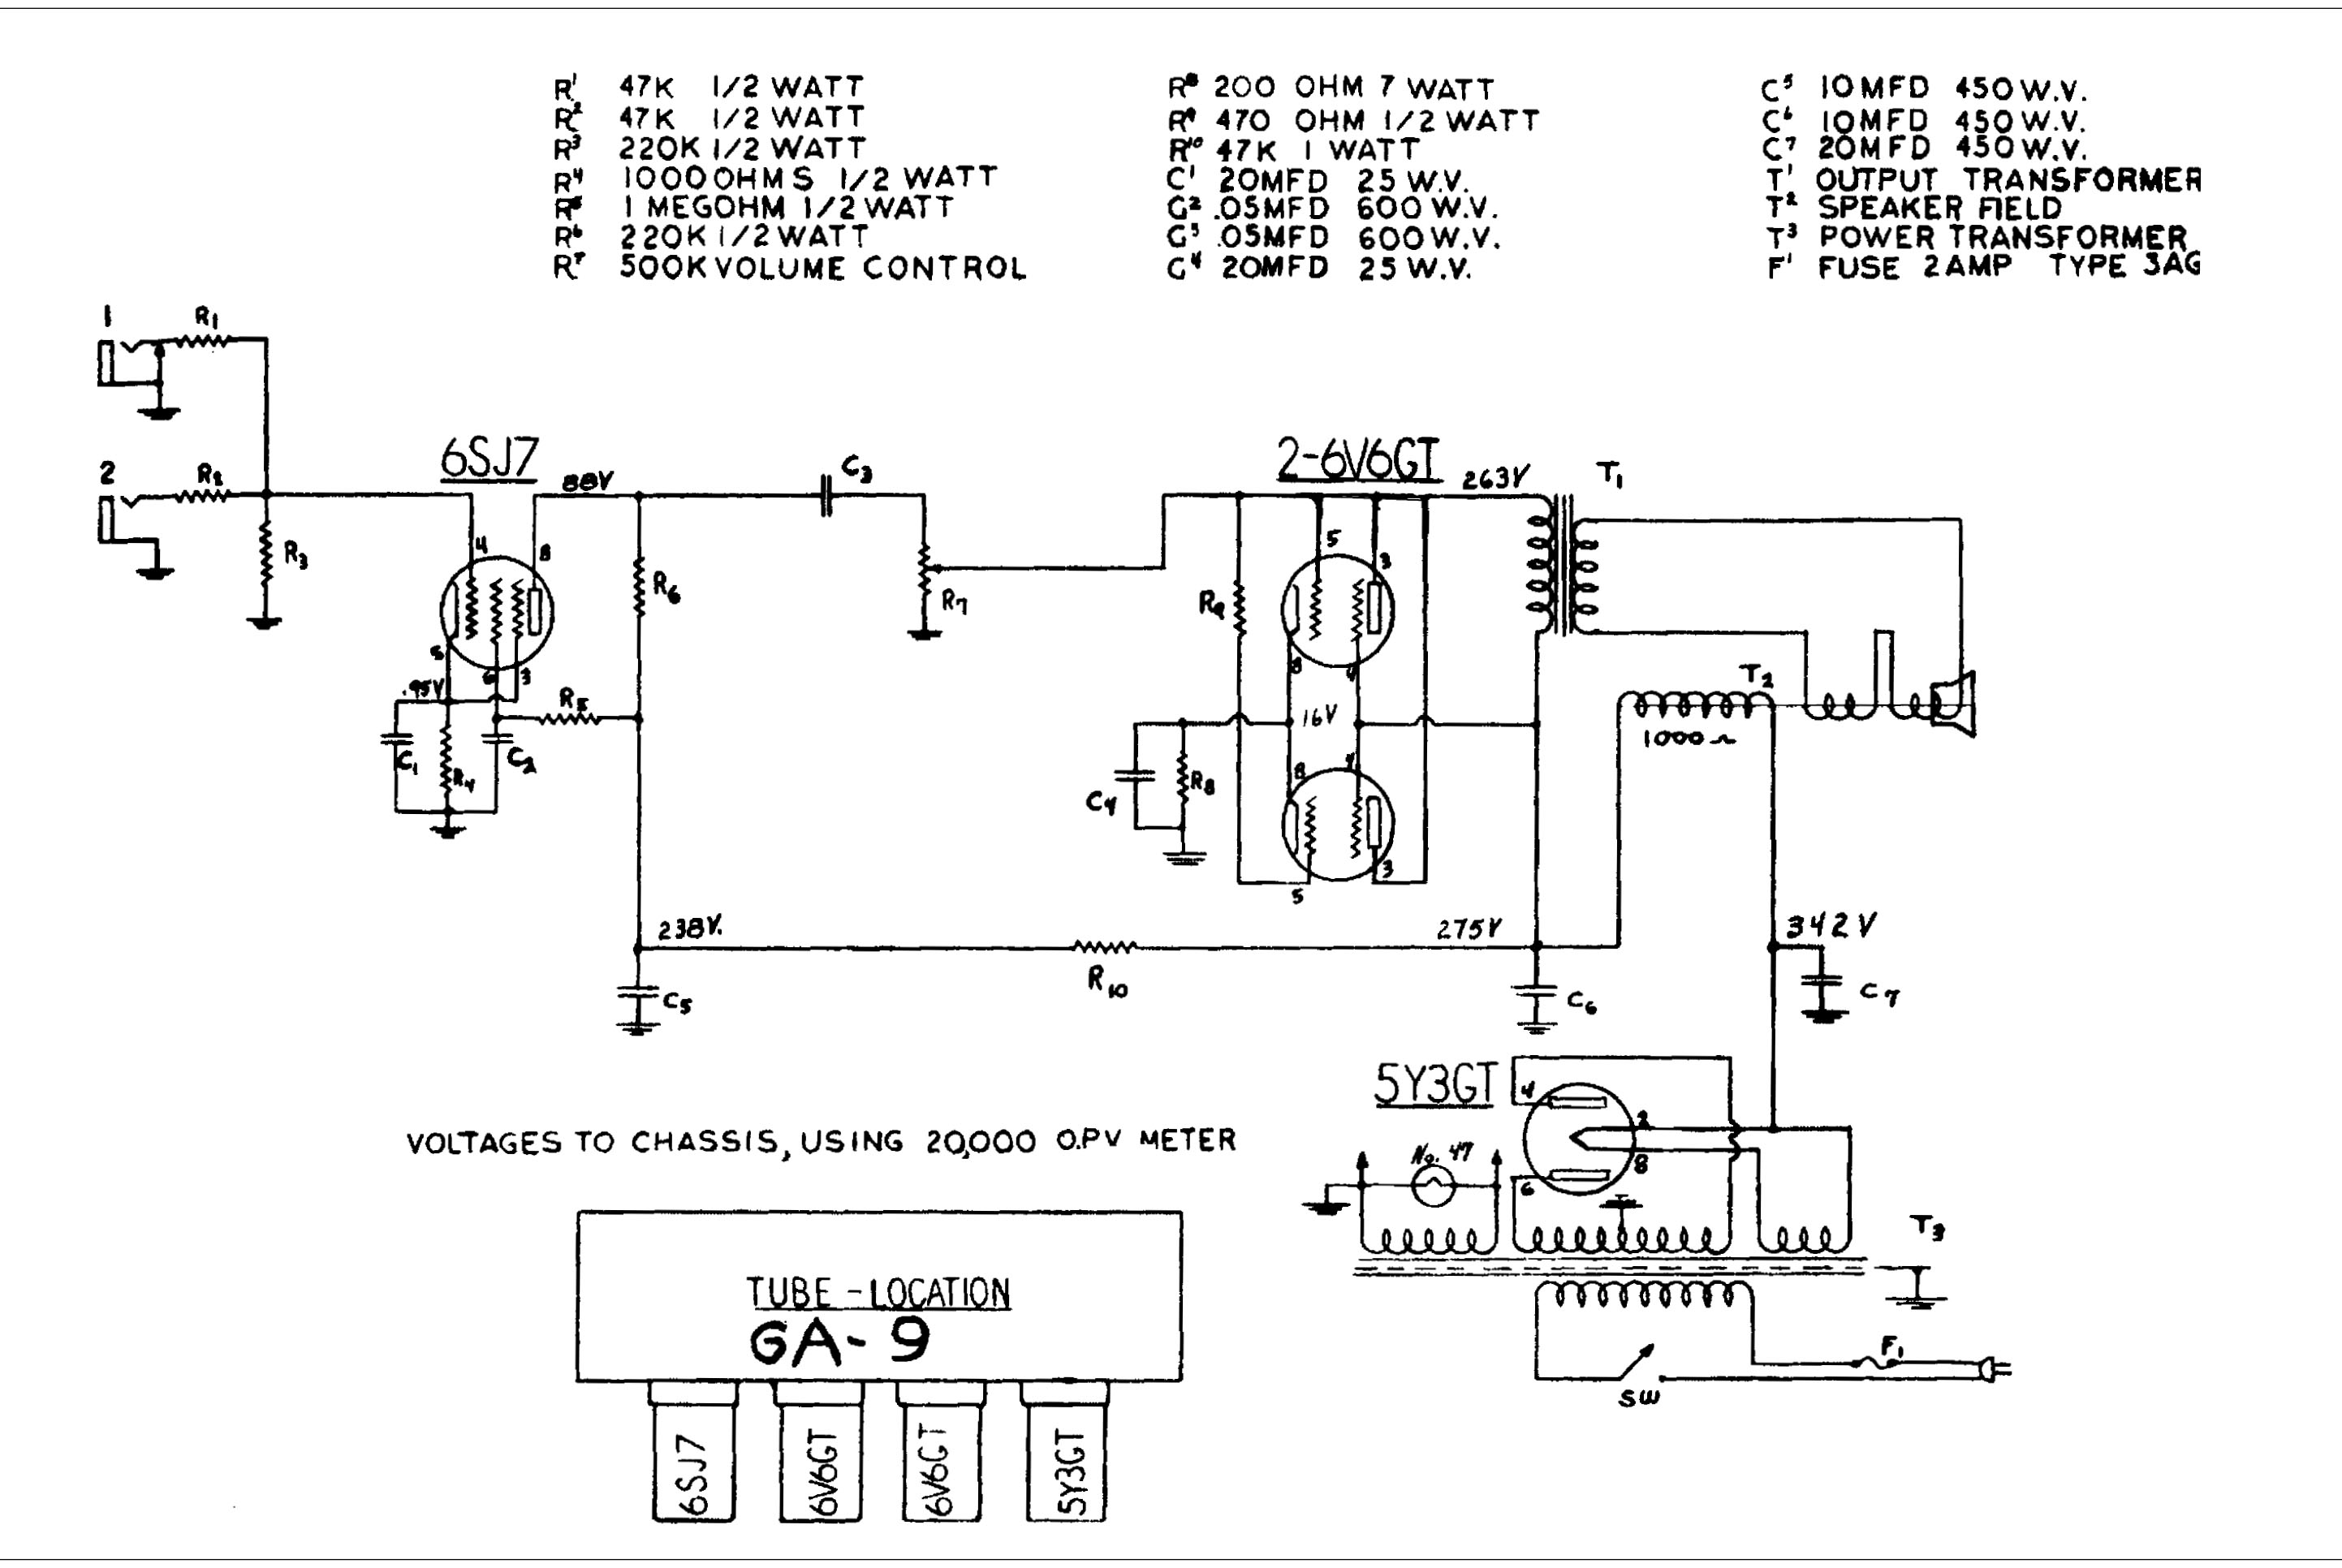 Gibson Br 9 Iration Audio Ga Power Transformer Wiring Diagram There Are Many Versions Of This Amp And One Resembles Most Closely The